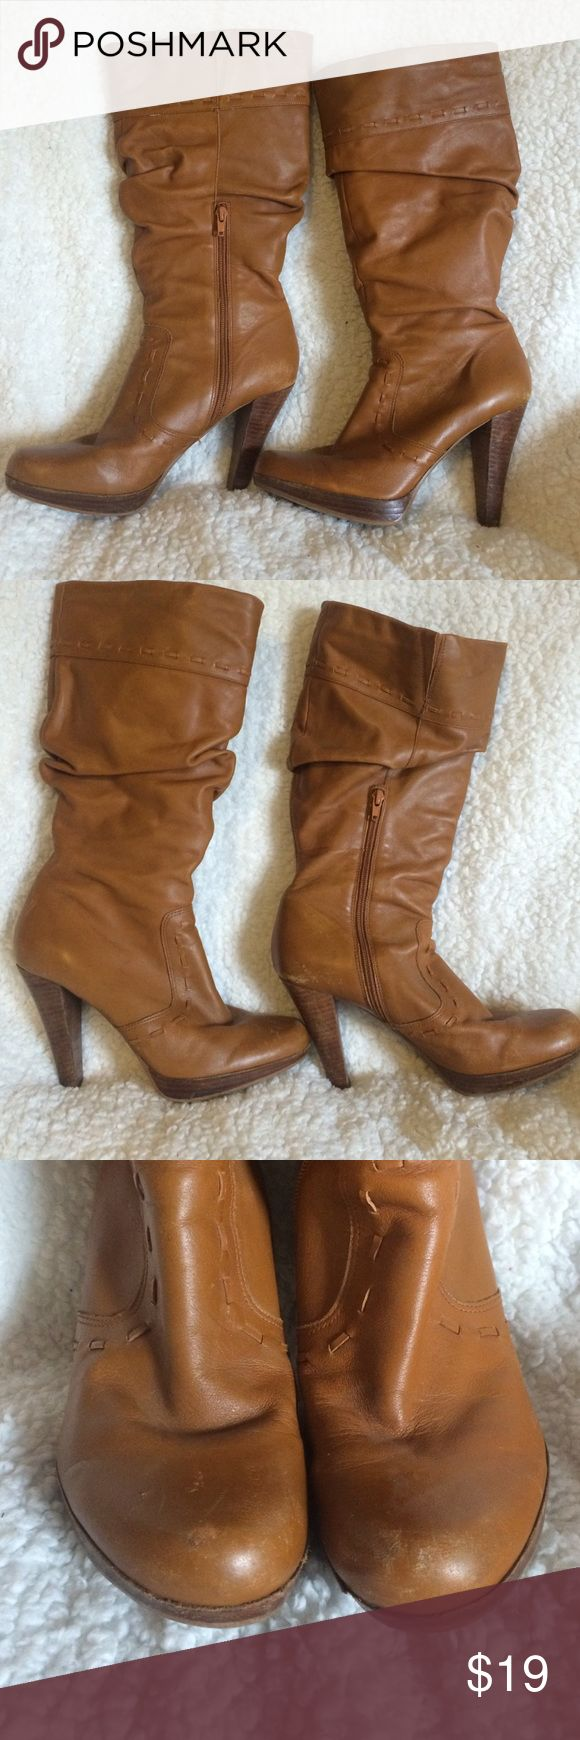 Guess by Marciano Camel boots Zip up with stretch band at calf. These boots are in good condition but definitely loved with lots of wear marks on heels and toe. Still lots of love left! Great quality. Size 10 M. Camel color. Guess by Marciano Shoes Heeled Boots